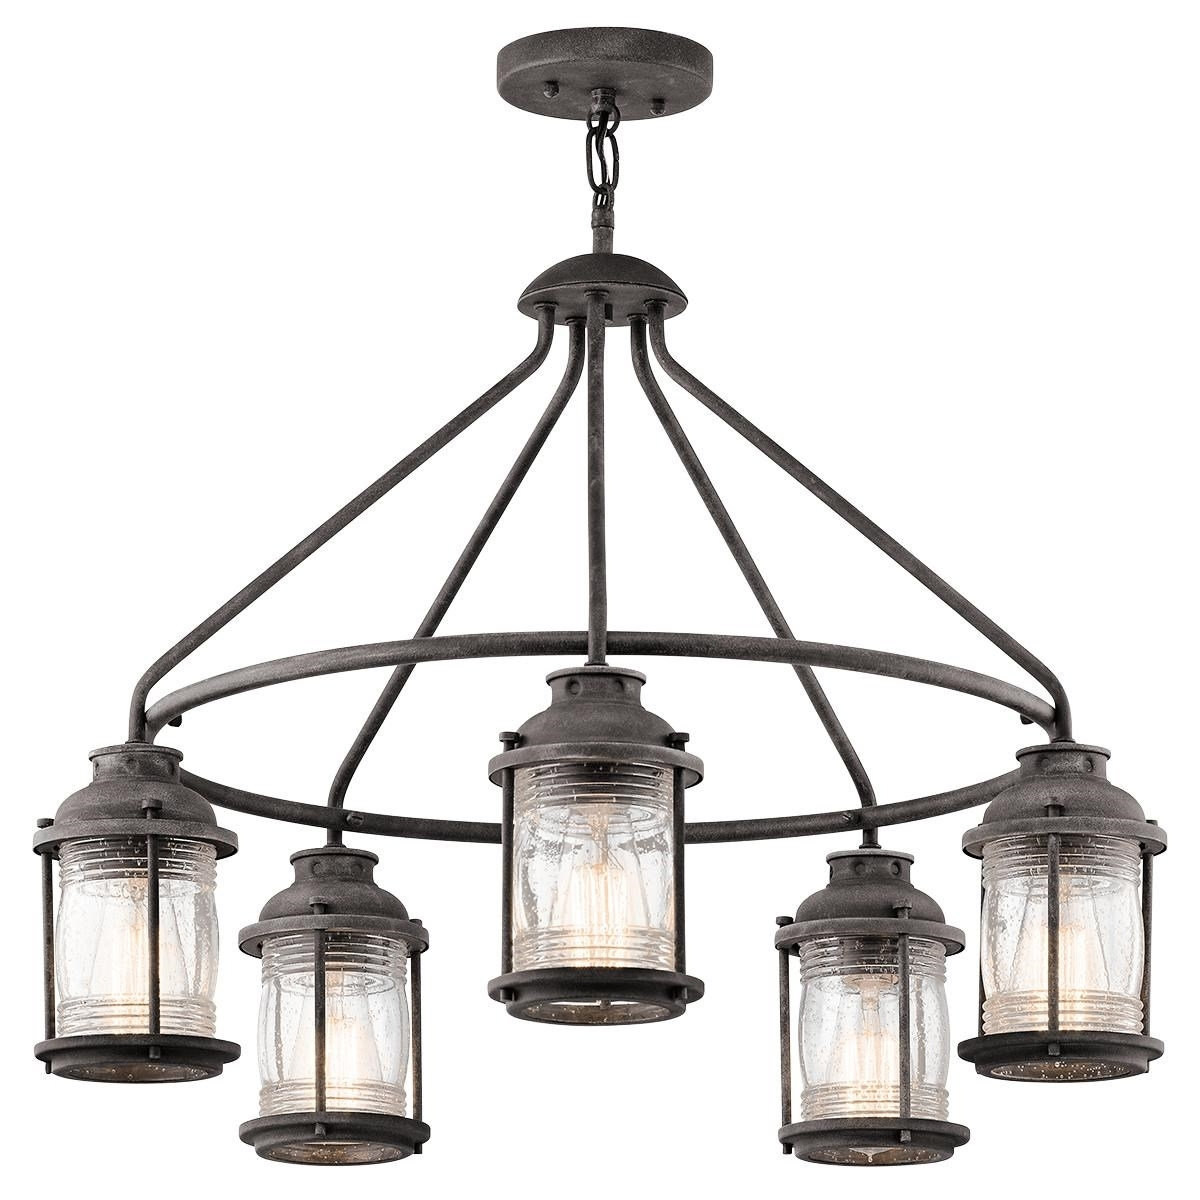 Kichler 49667Wzc Ashland Bay Outdoor Pendant Light In Weathered Zinc With 2019 Outdoor Pendant Kichler Lighting (View 17 of 20)